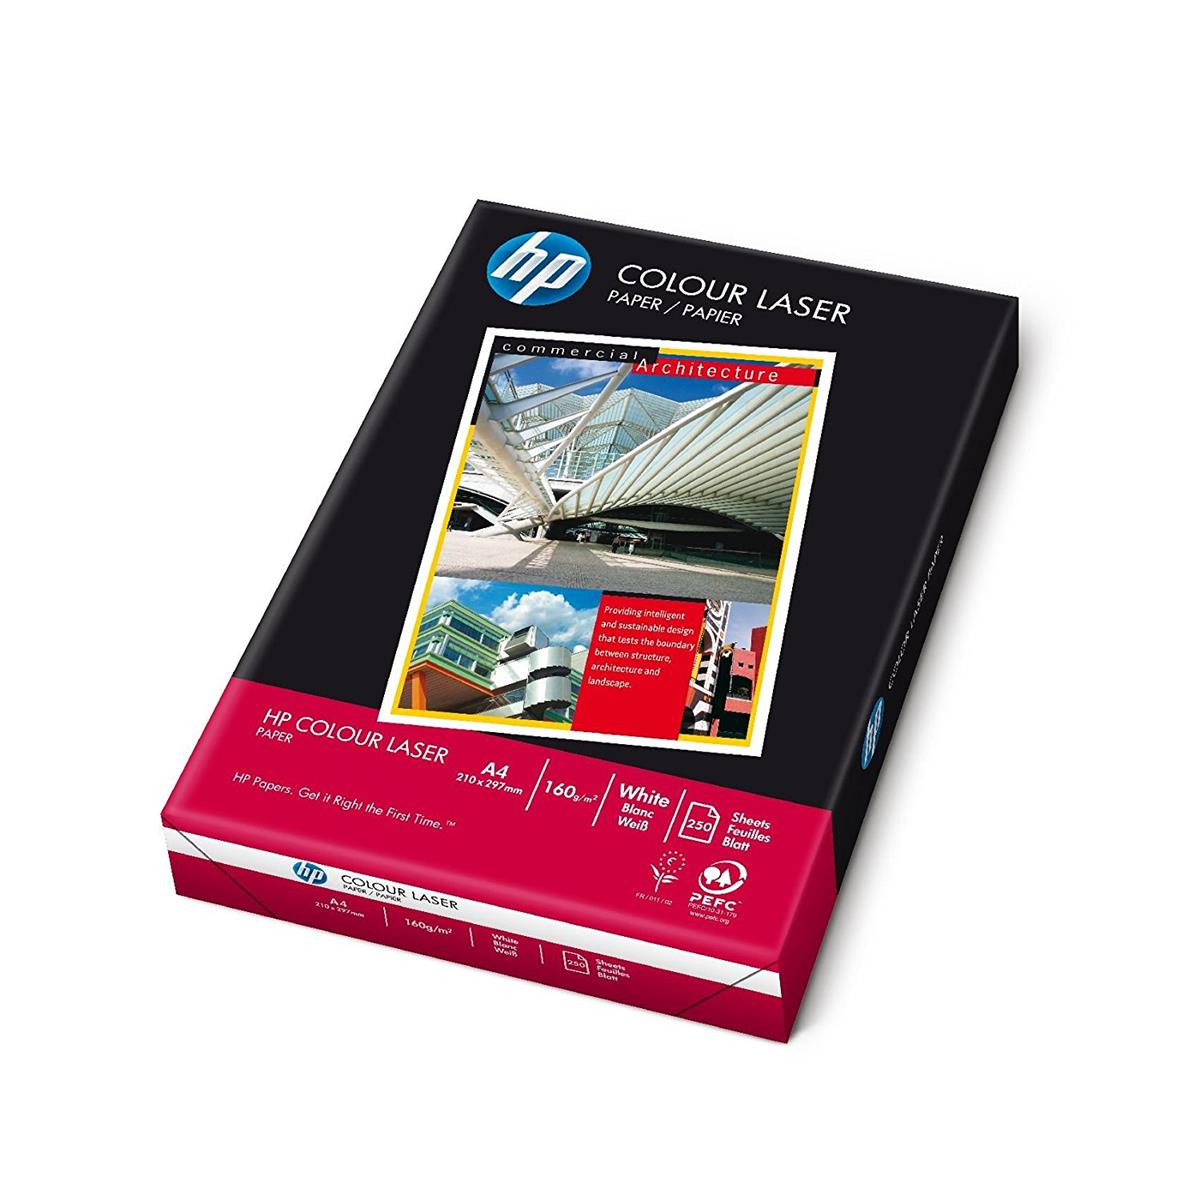 Image for Hewlett Packard [HP] Colour Laser Paper 160gsm A4 White Ref HCL0339 [250 Sheets]